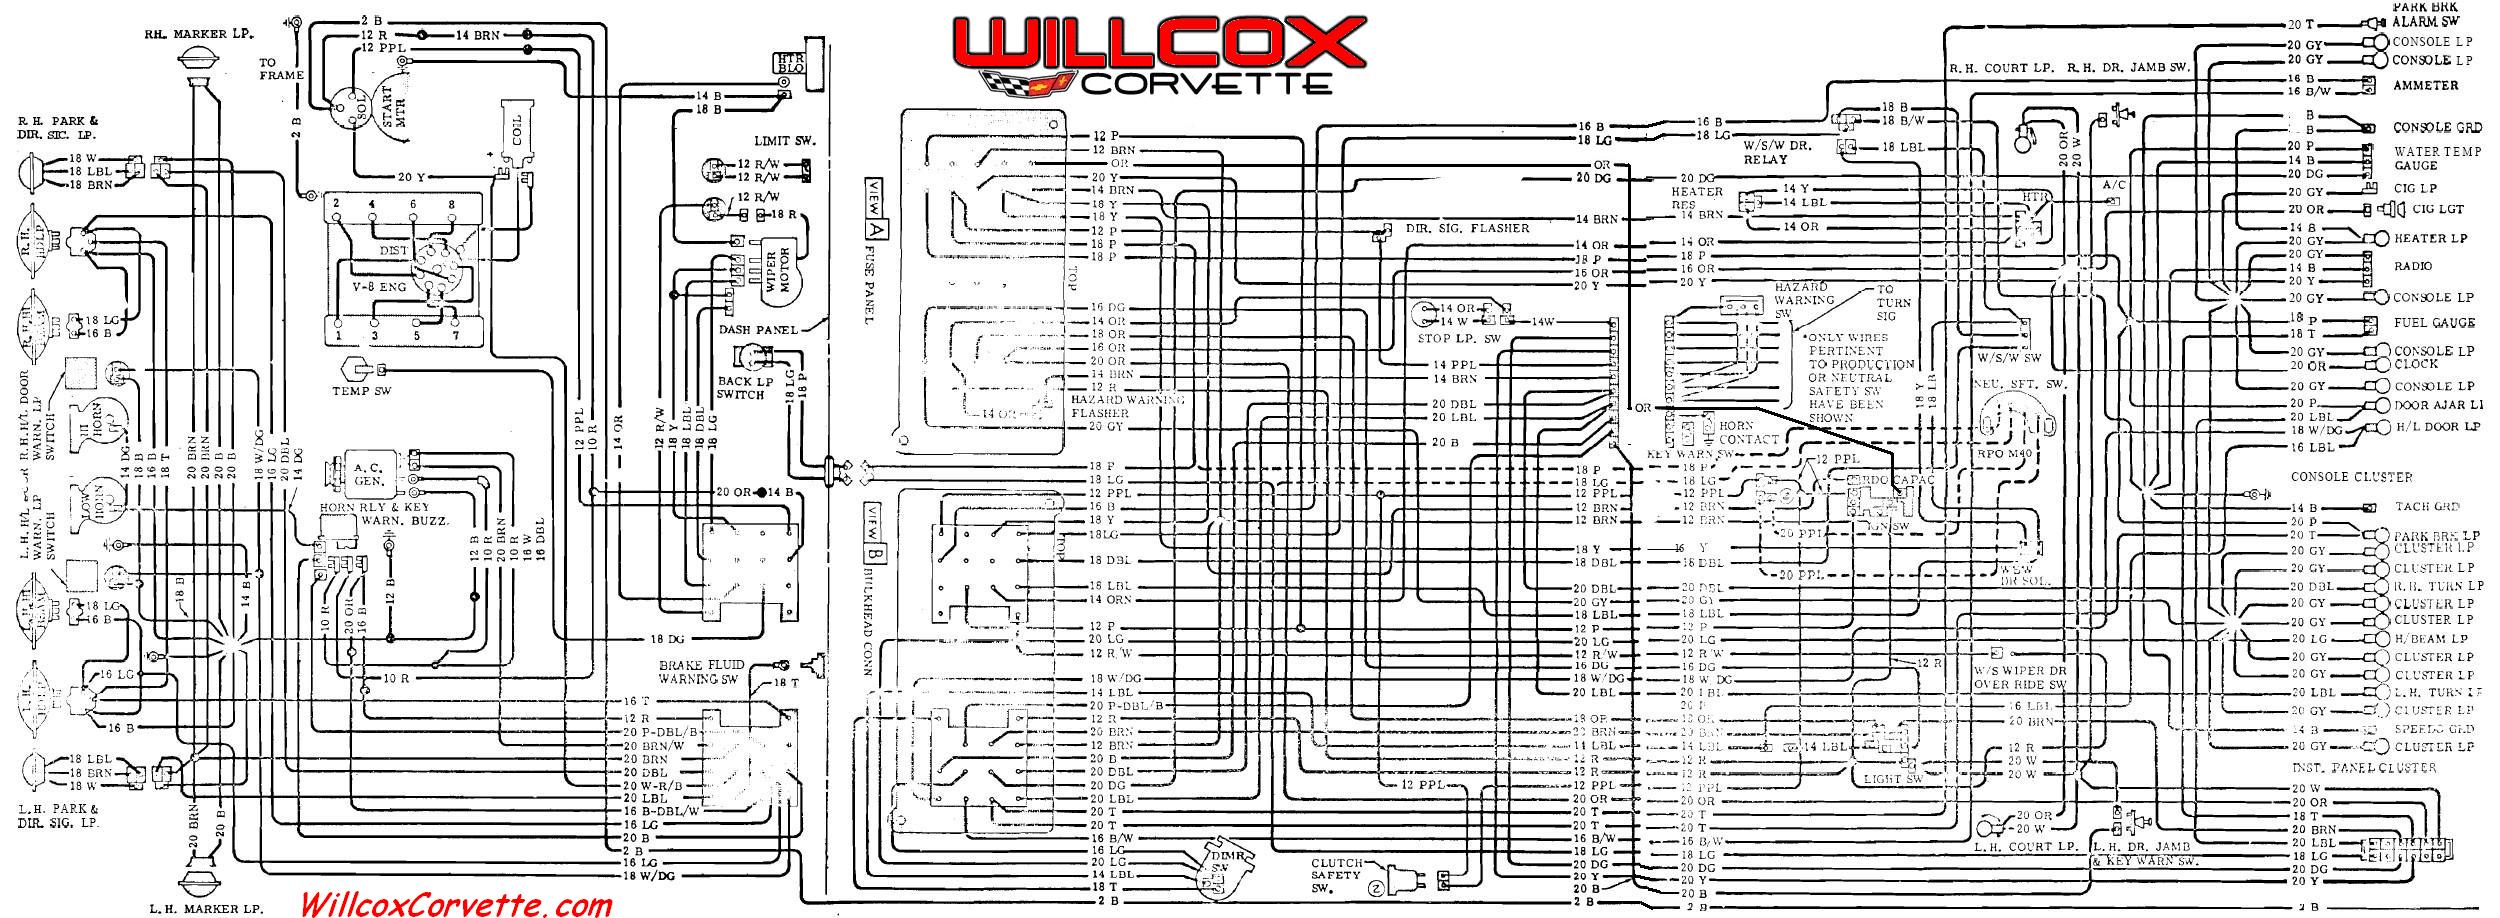 69 trace harness forward and main schematic with missing wire added2?resized665%2C244 1983 chevrolet c20 wiring diagram 1984 chevrolet c10 wiring 1981 chevrolet c10 wiring diagram at pacquiaovsvargaslive.co